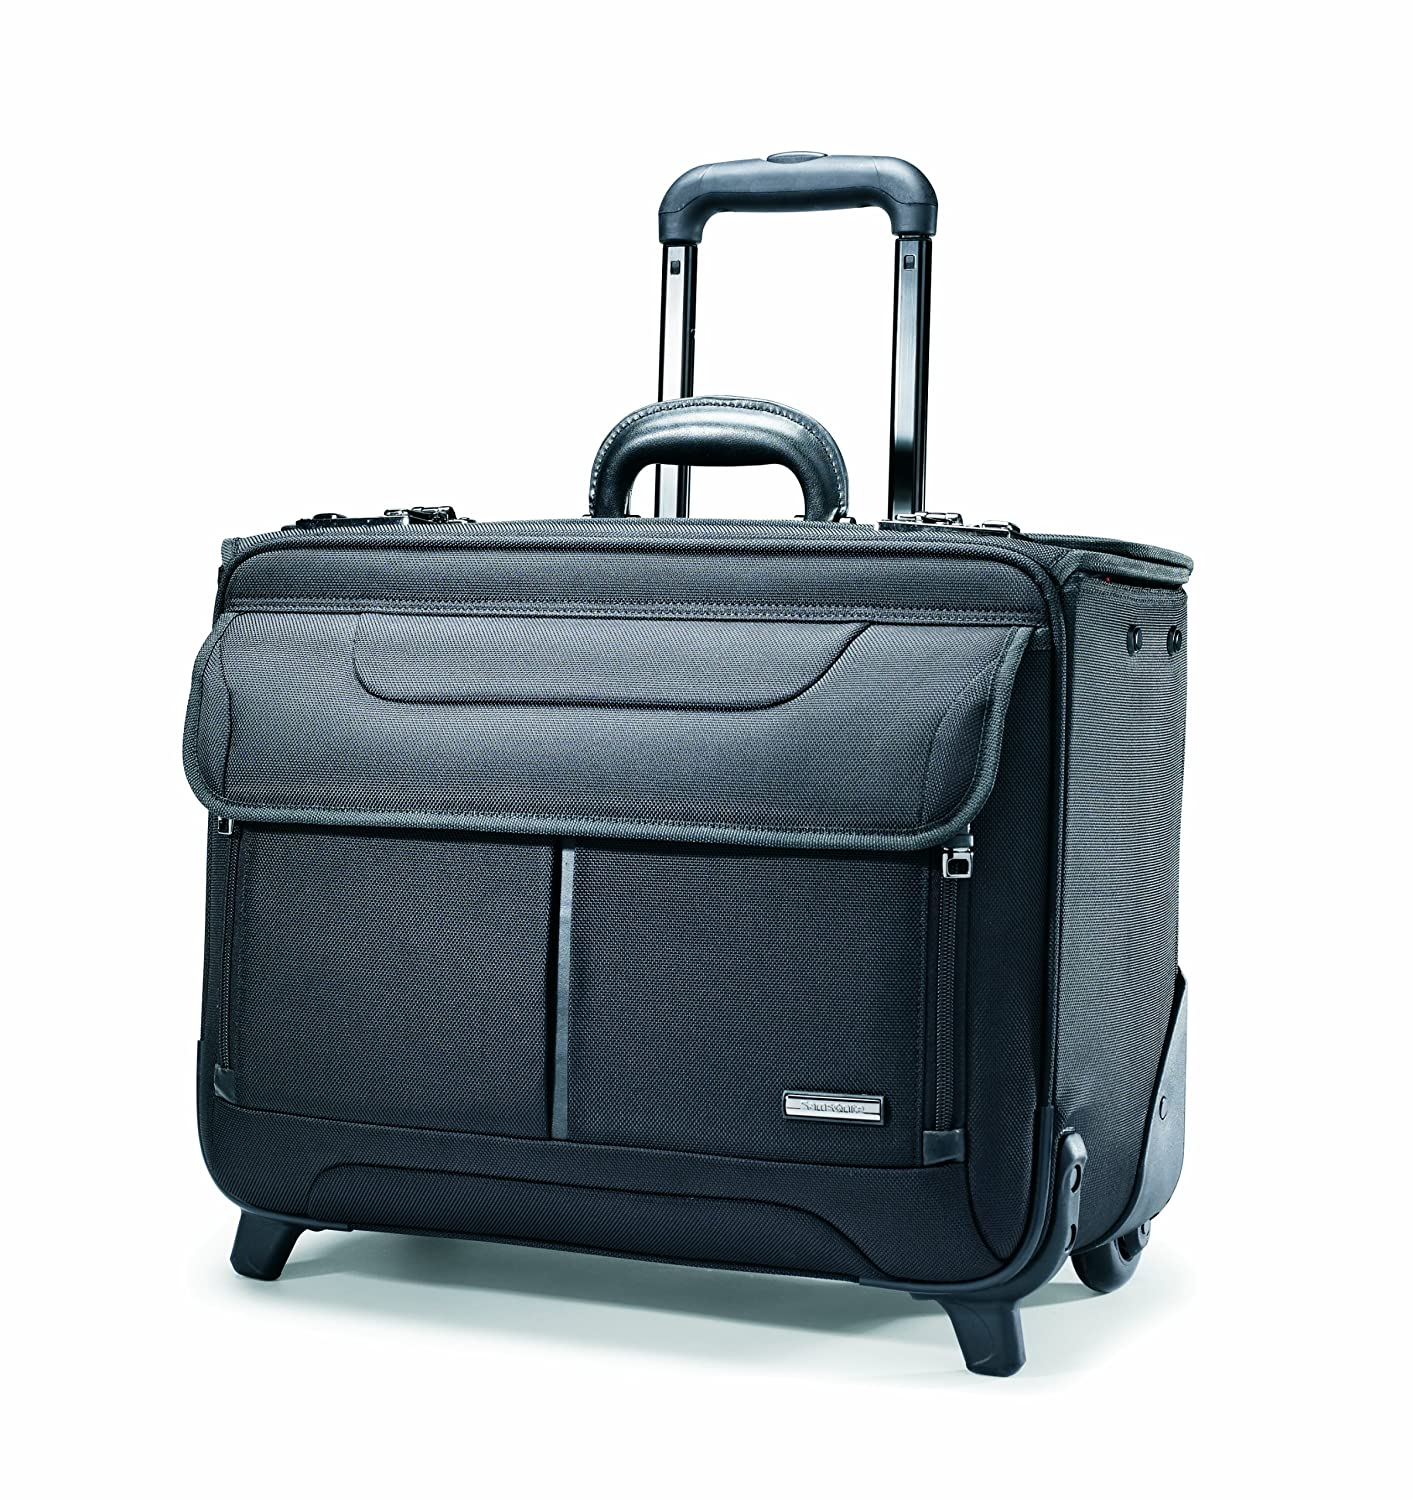 Samsonite Wheeled Catalog Case, 17-1/4 x 7-1/2 x 13 Inches, Black (458311041) Samsonite Corporation